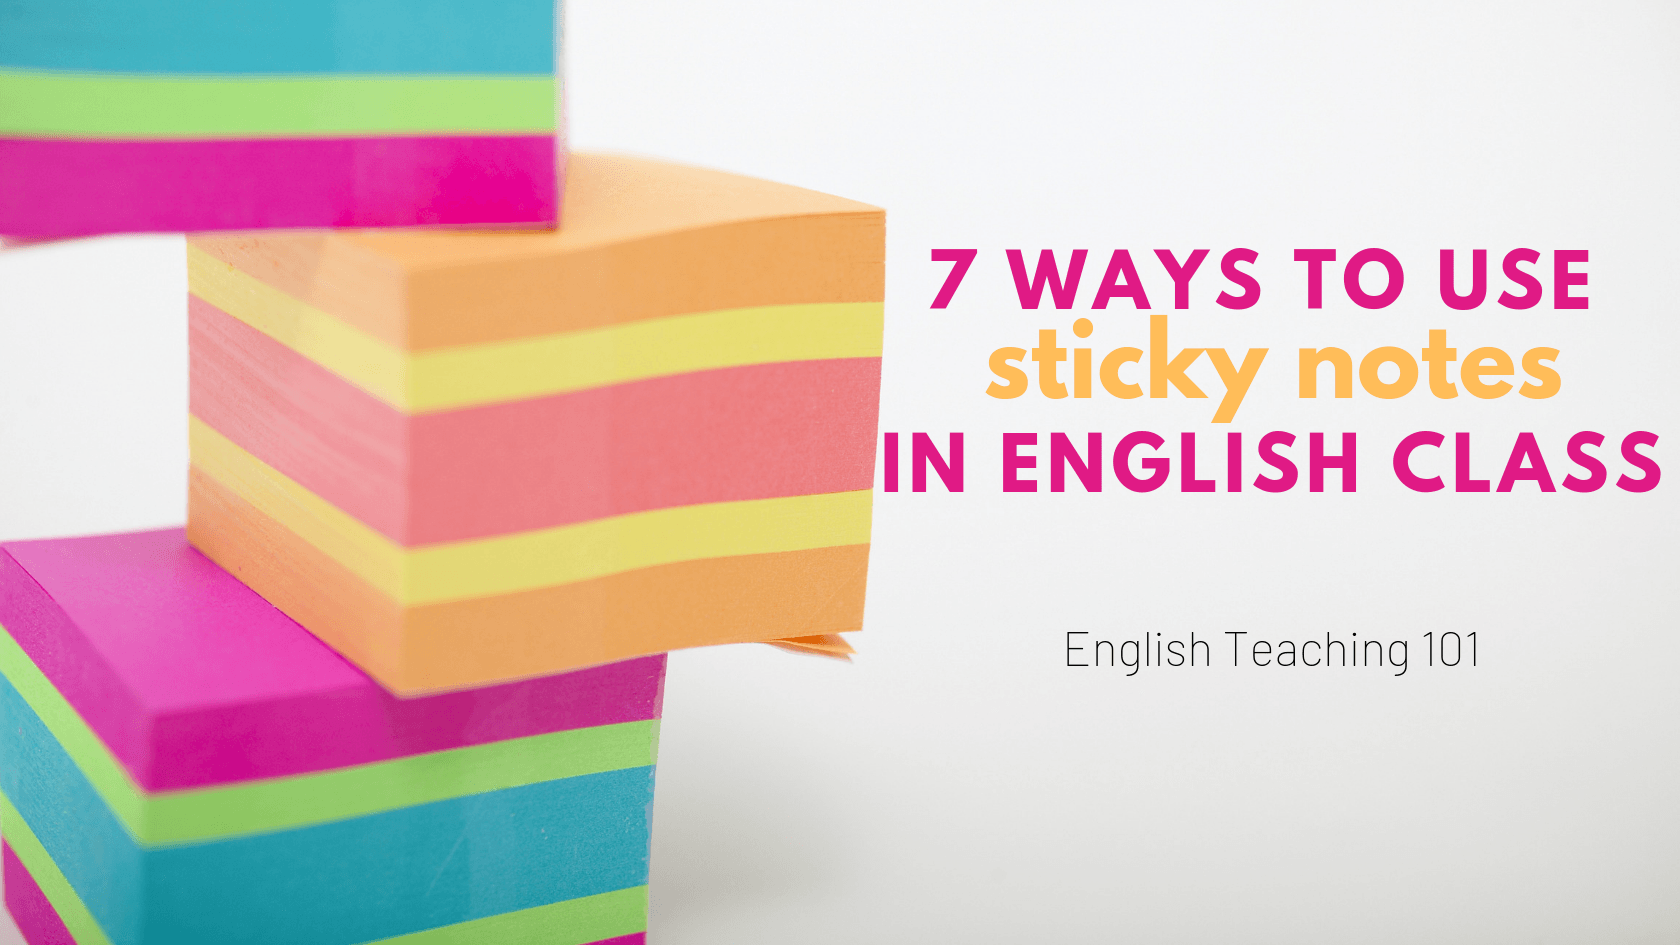 7 Practical Ways to Use Sticky Notes in English Class